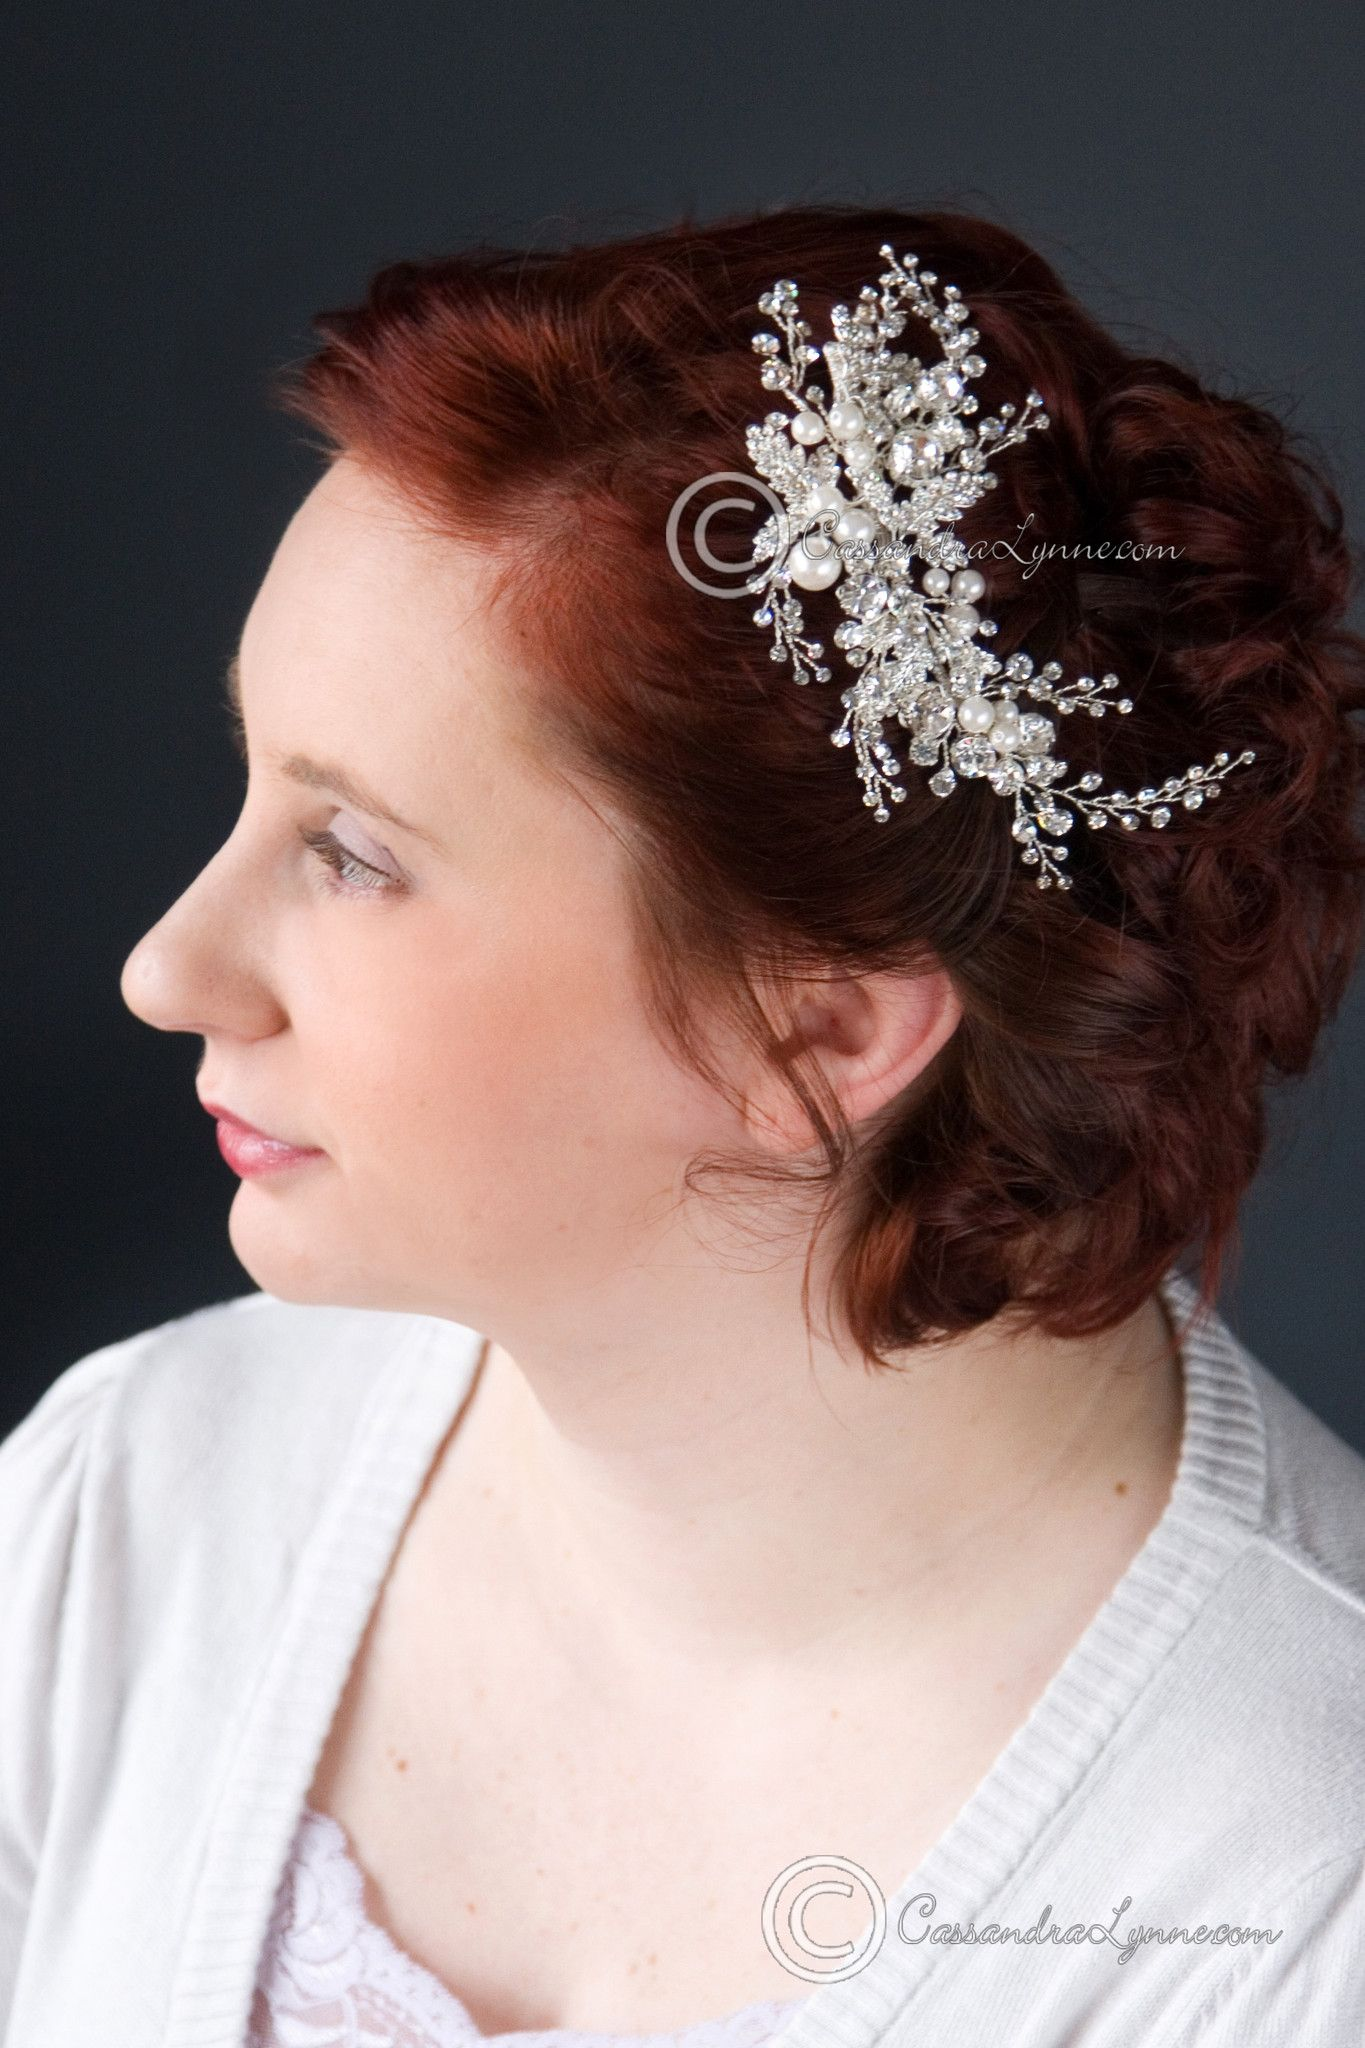 Bridal Headpiece Clip of Jewel Sprays and Pearls Headpieces